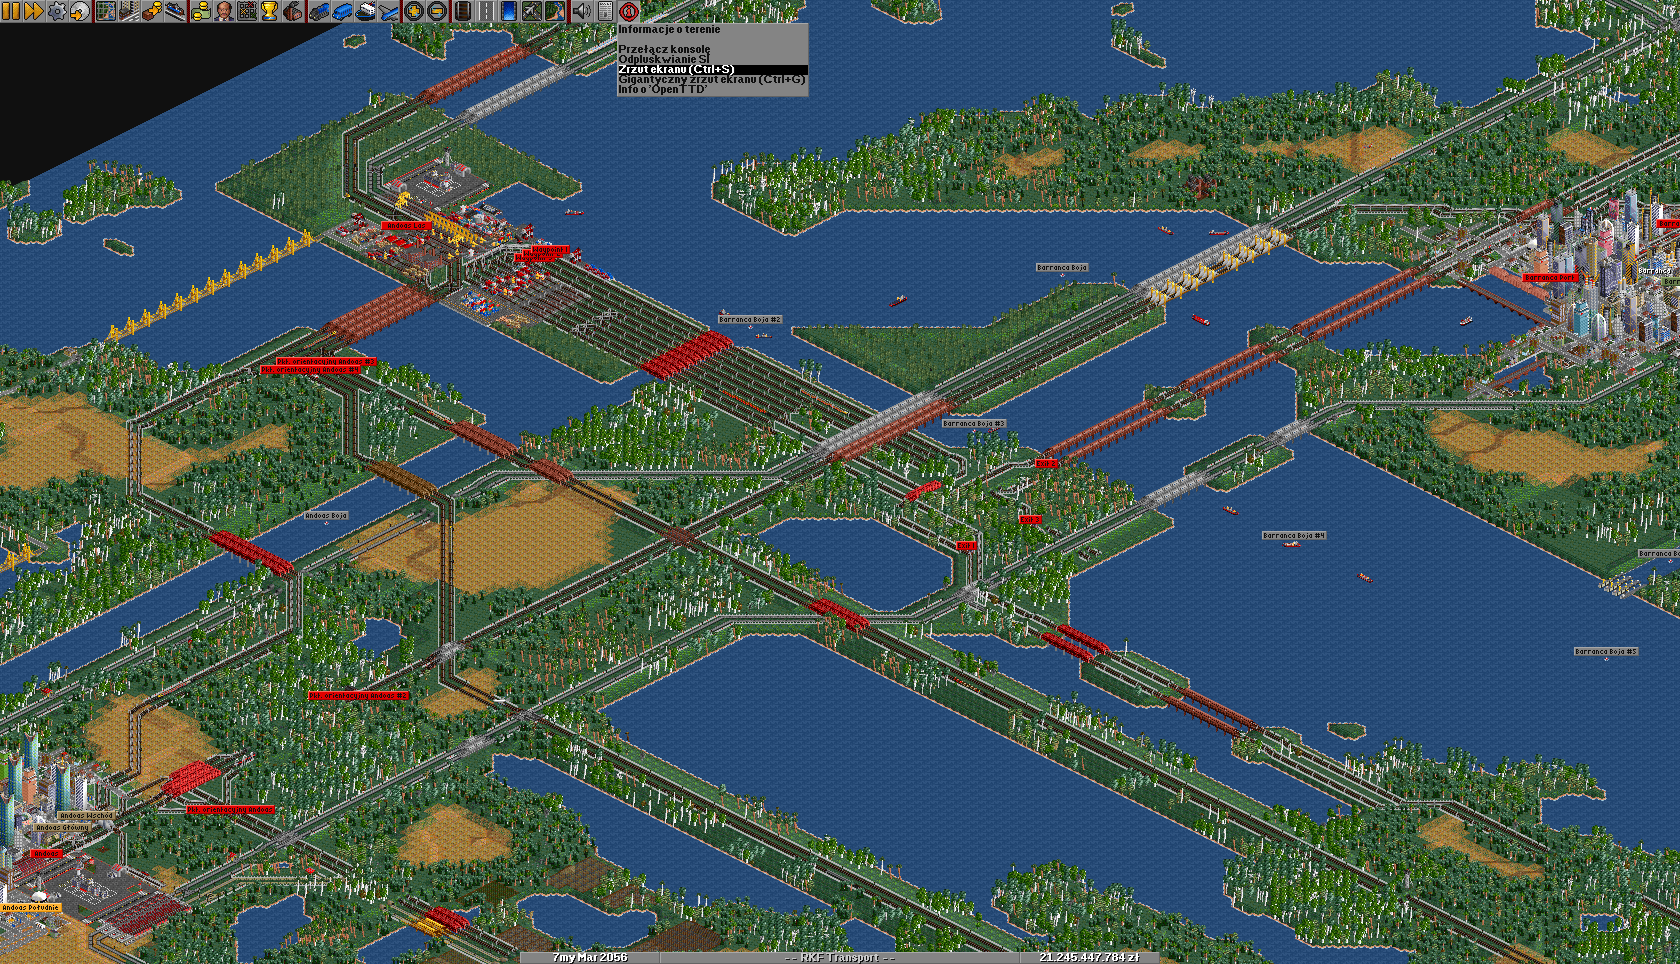 At the same time, organize the rail network to keep a good flow.